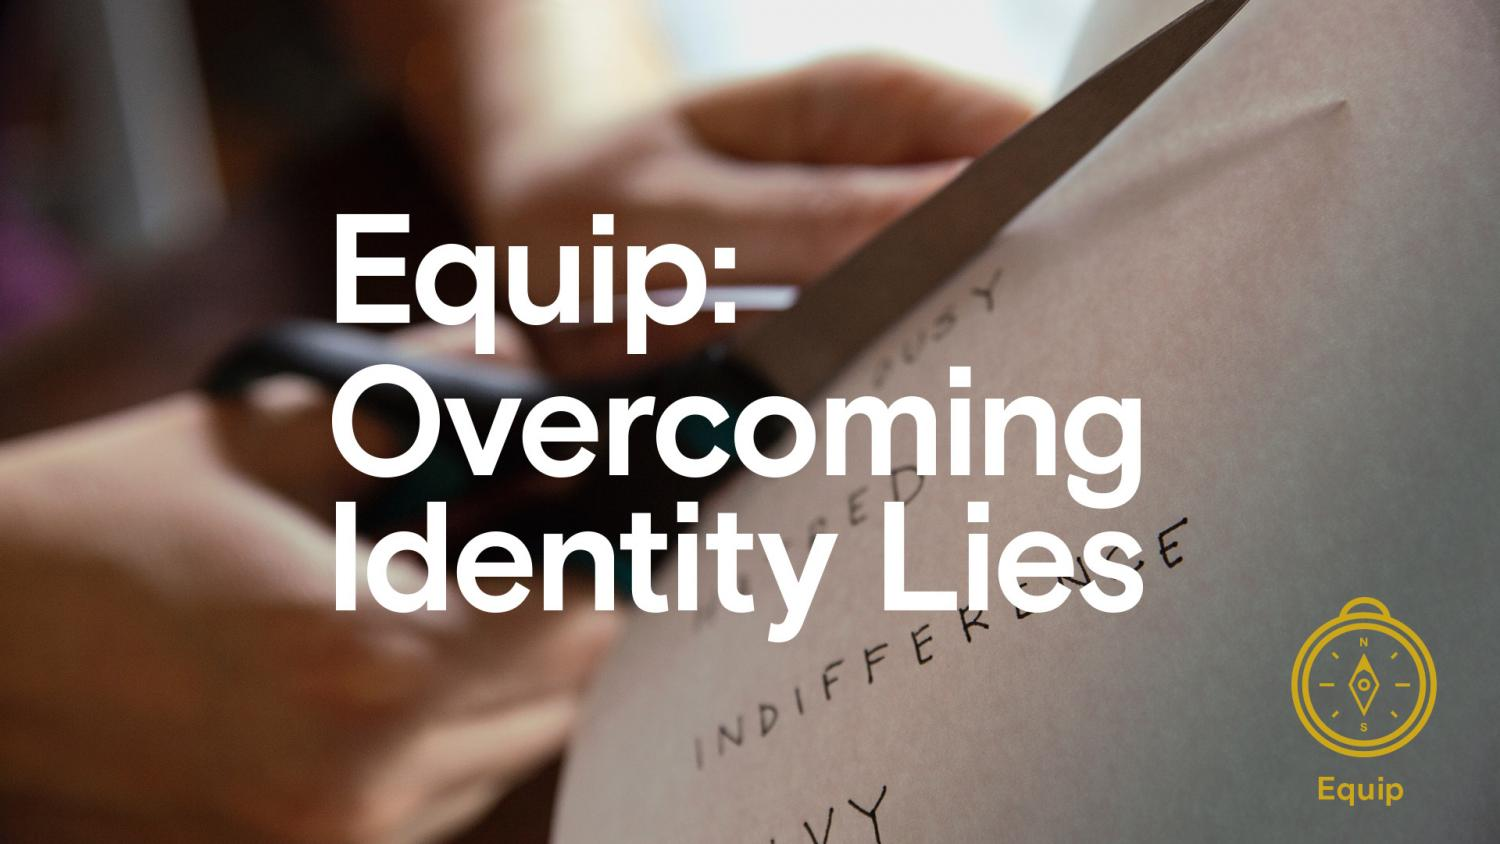 Equip: Overcoming Identity Lies